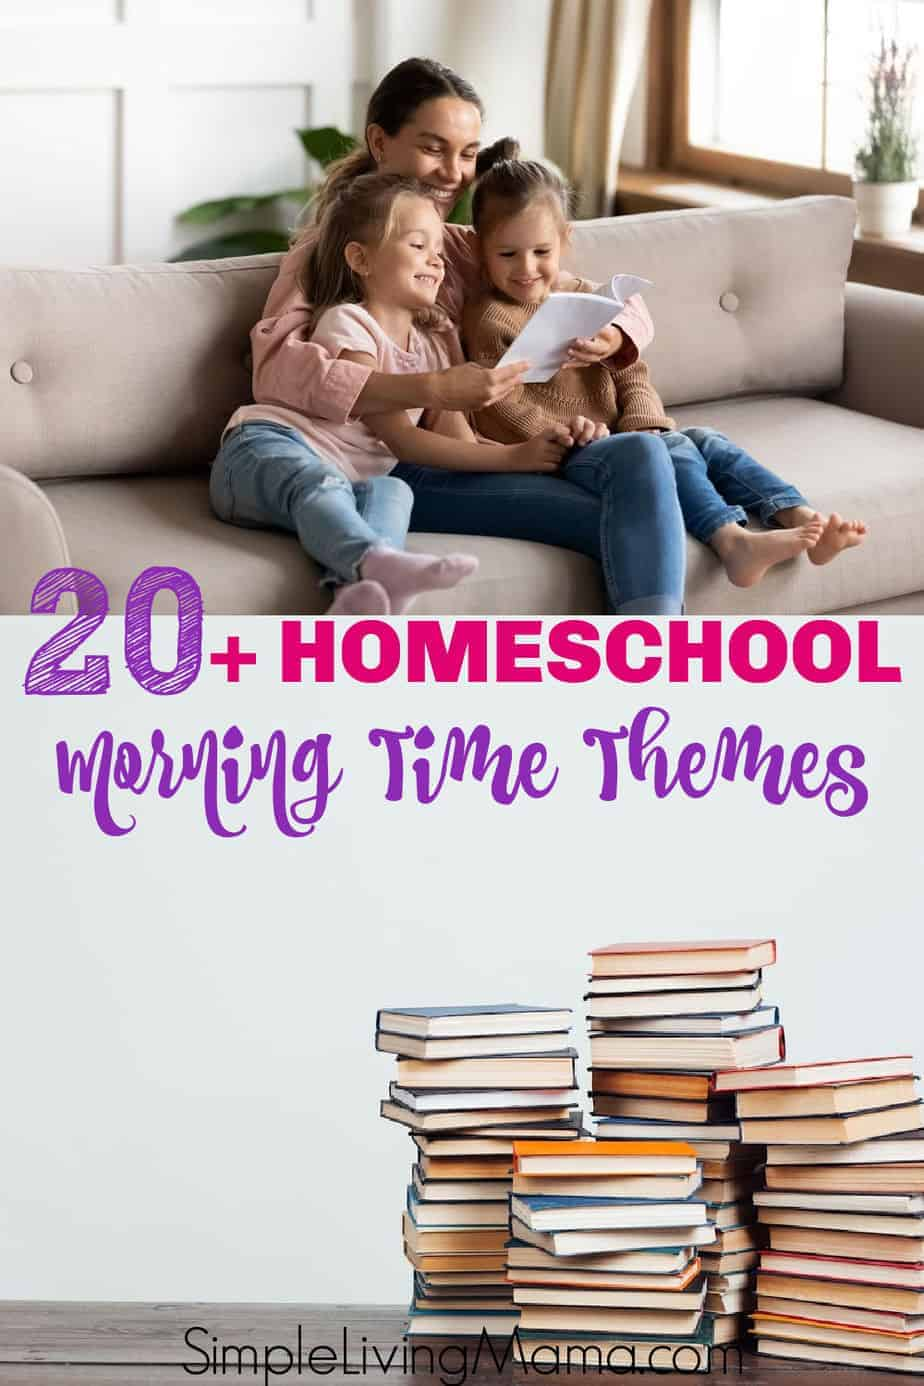 Plan an amazing homeschool morning time with these 20+ homeschool morning time themes and ideas!